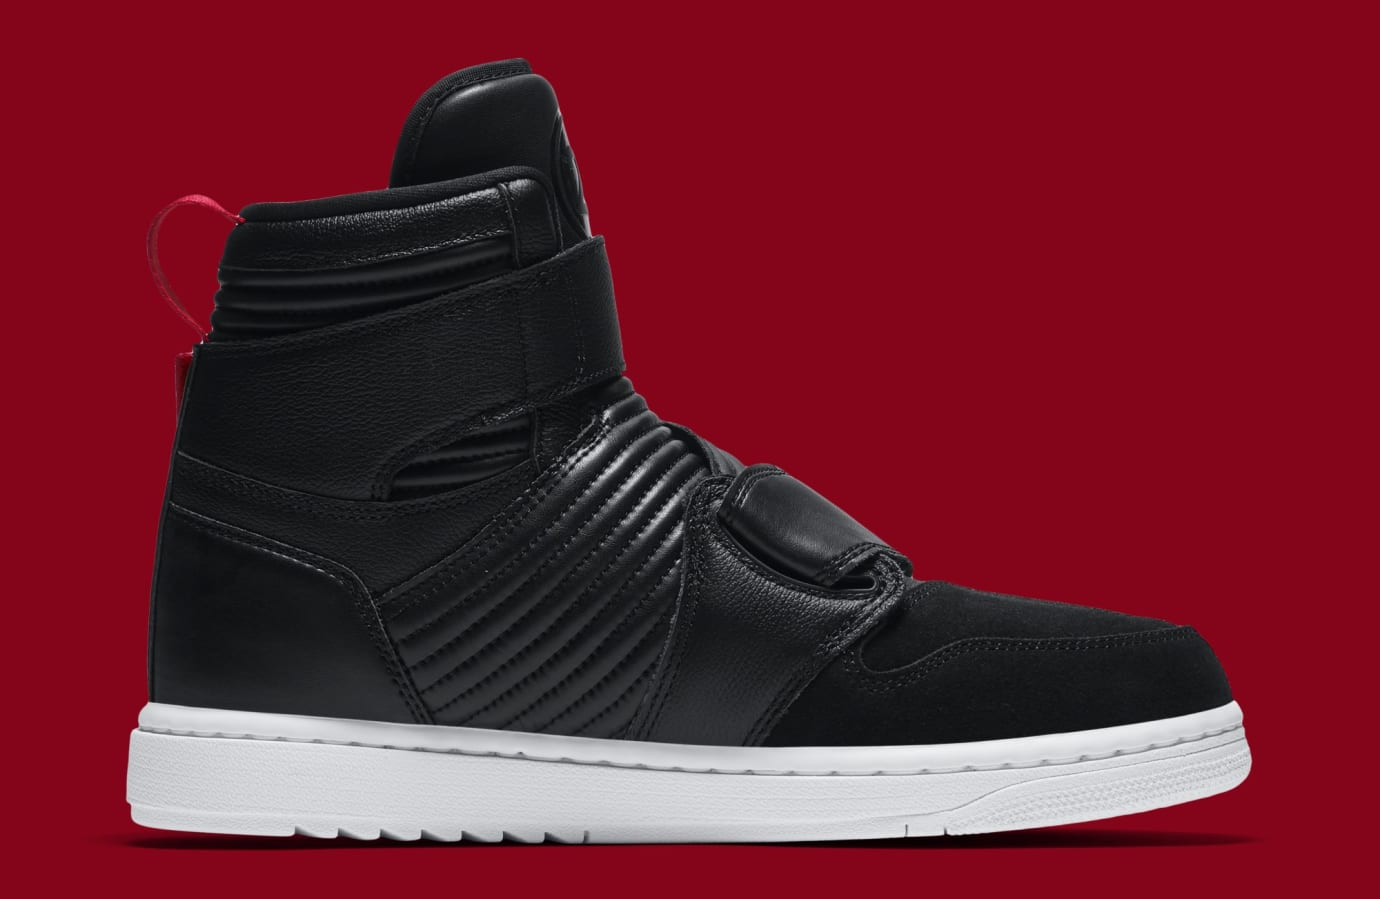 Air Jordan 1 Motorsports 'Black/Red' AT3146-001 (Medial)